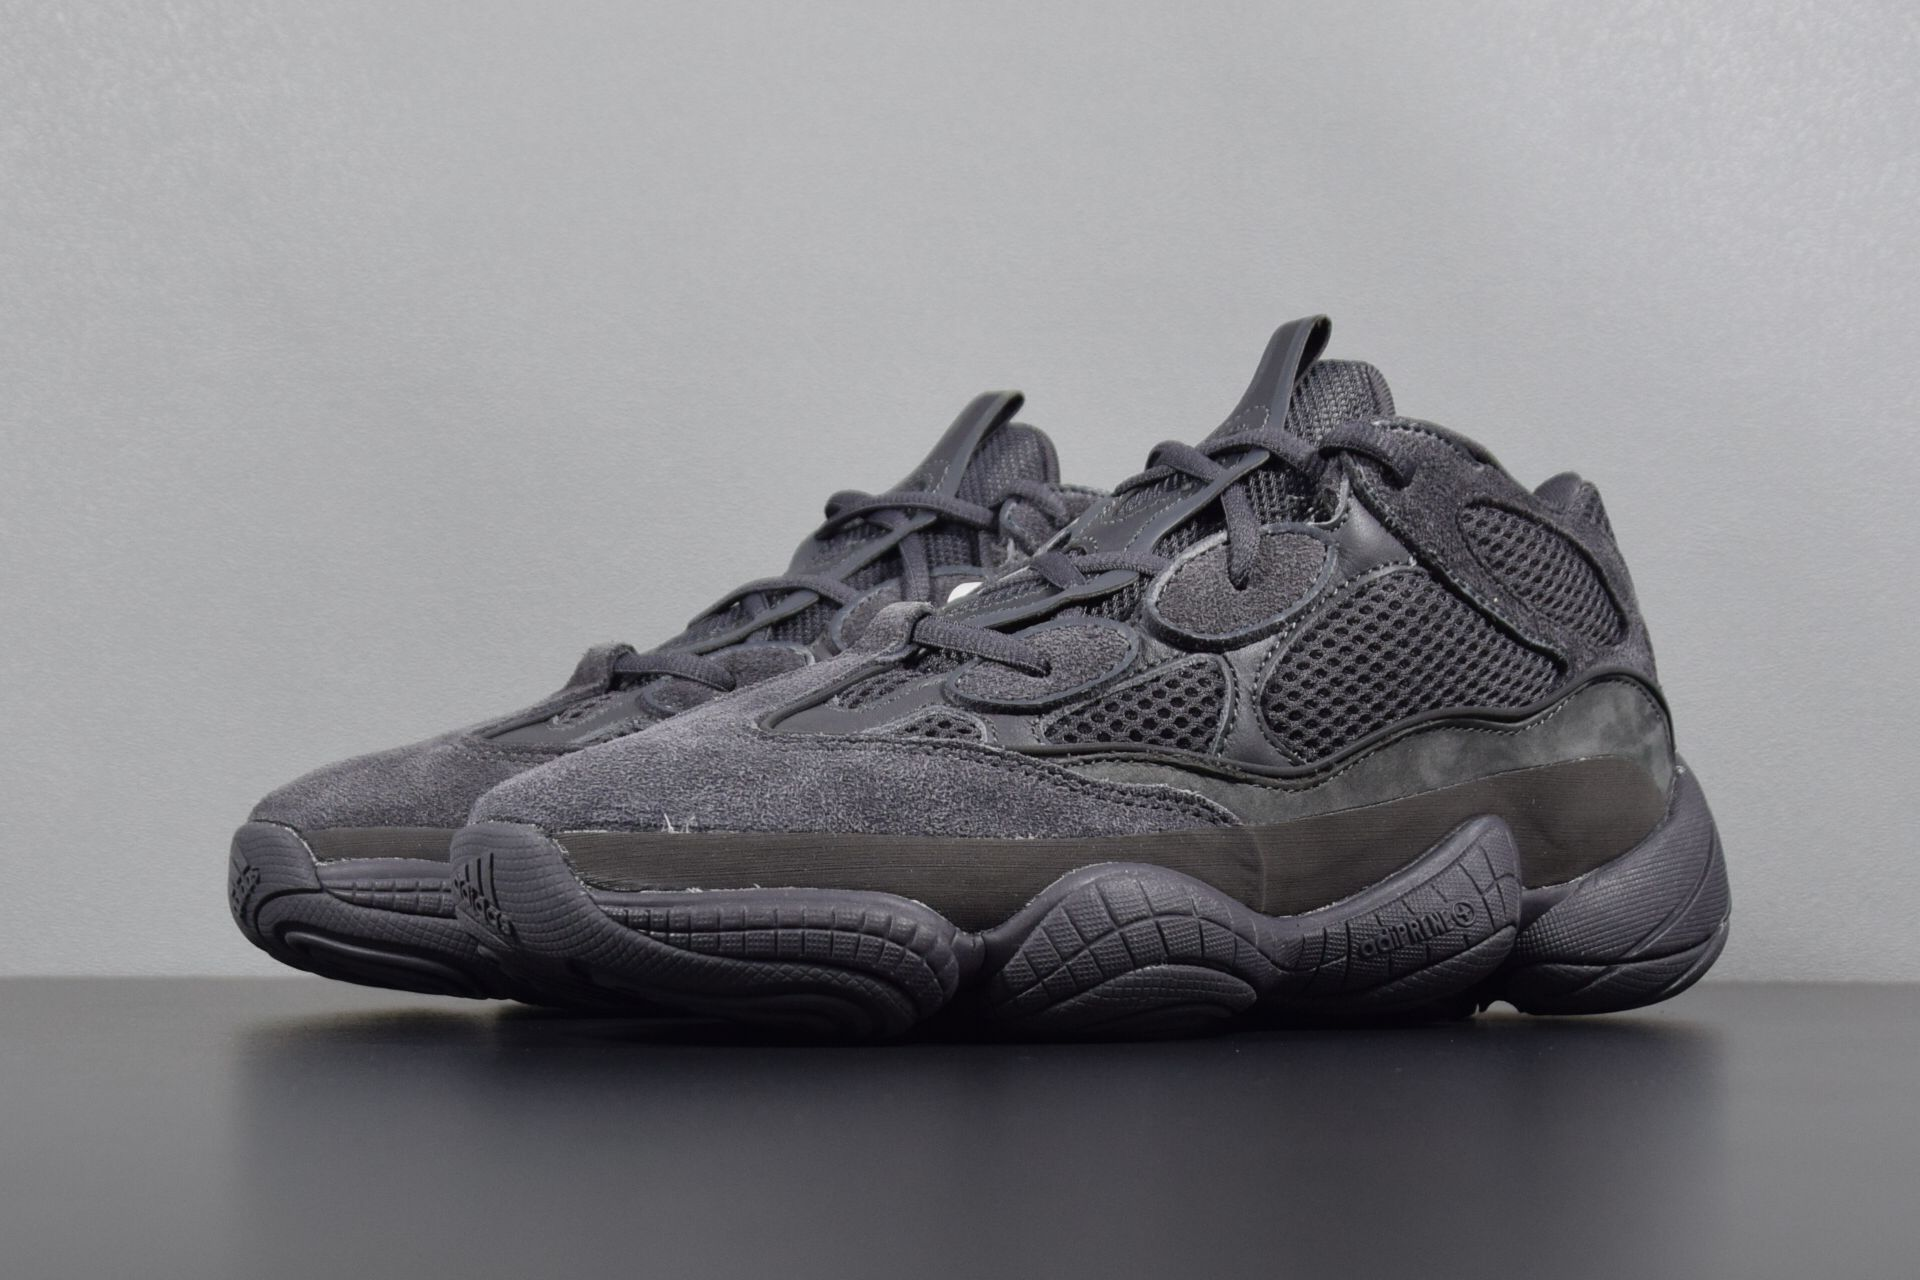 212cdcaa3 Adidas Yeezy Desert Rat 500   Utility Black  Style Code  F36640 Size  5-11  (US) Waiting for you... send message to me.  adidas  yeezy  yeezy500   desertrat ...